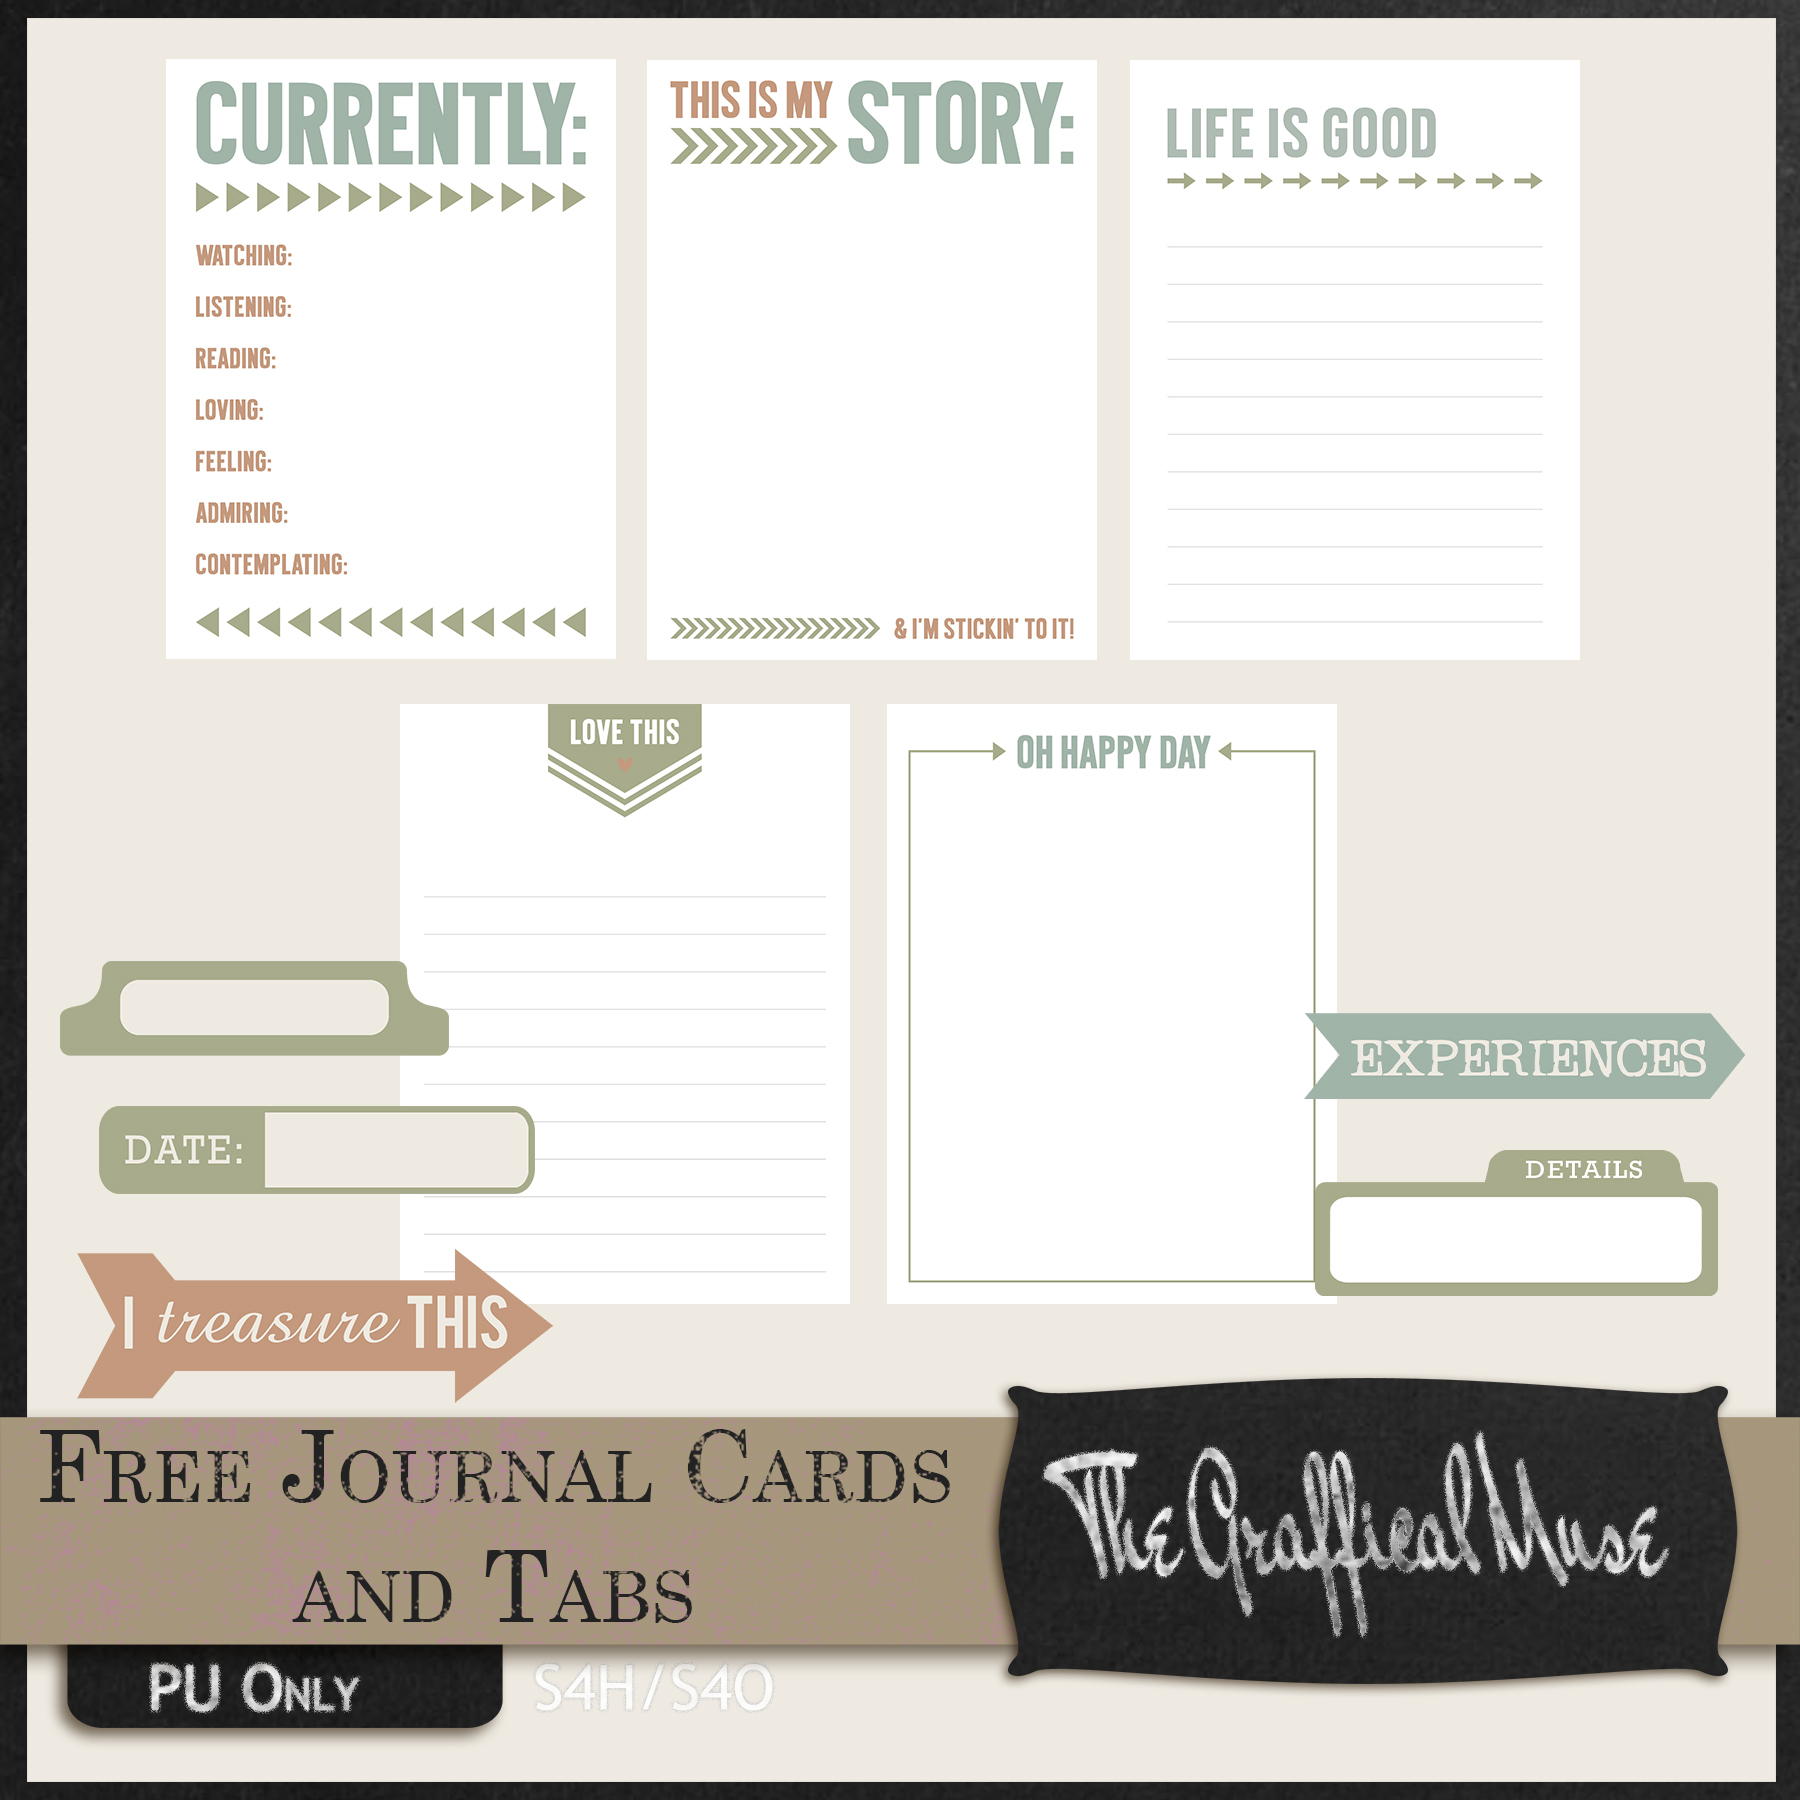 photo relating to Free Printable Journaling Cards called Journaling Card Archives - The Graffical Muse